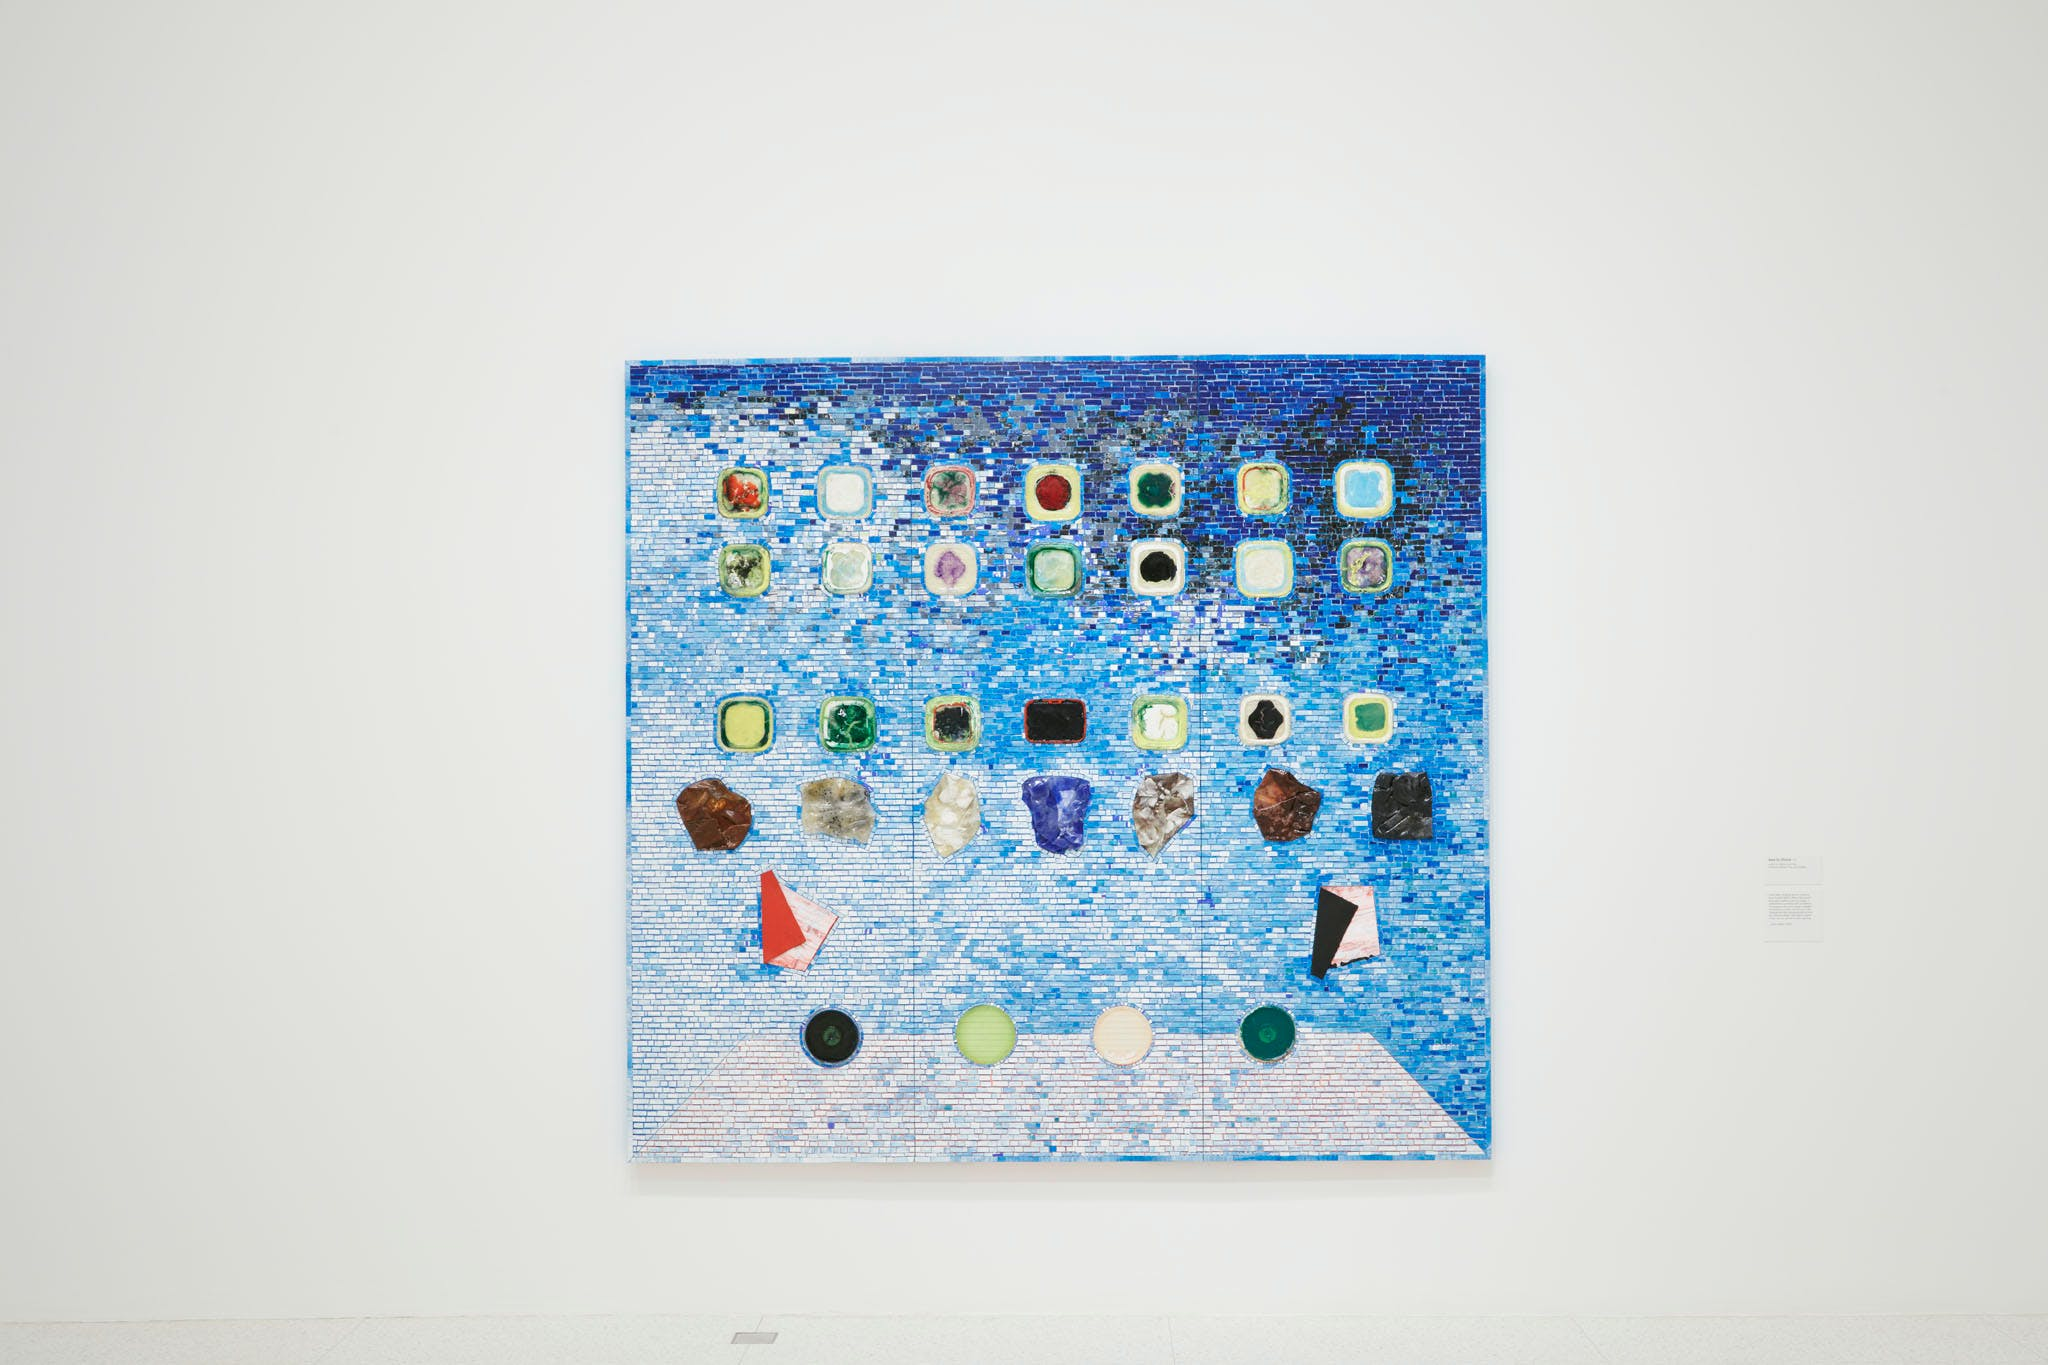 View of the exhibition Jack Whitten: Five Decades of Painting, 2015; Jack Whitten, Apps for Obama, 2011